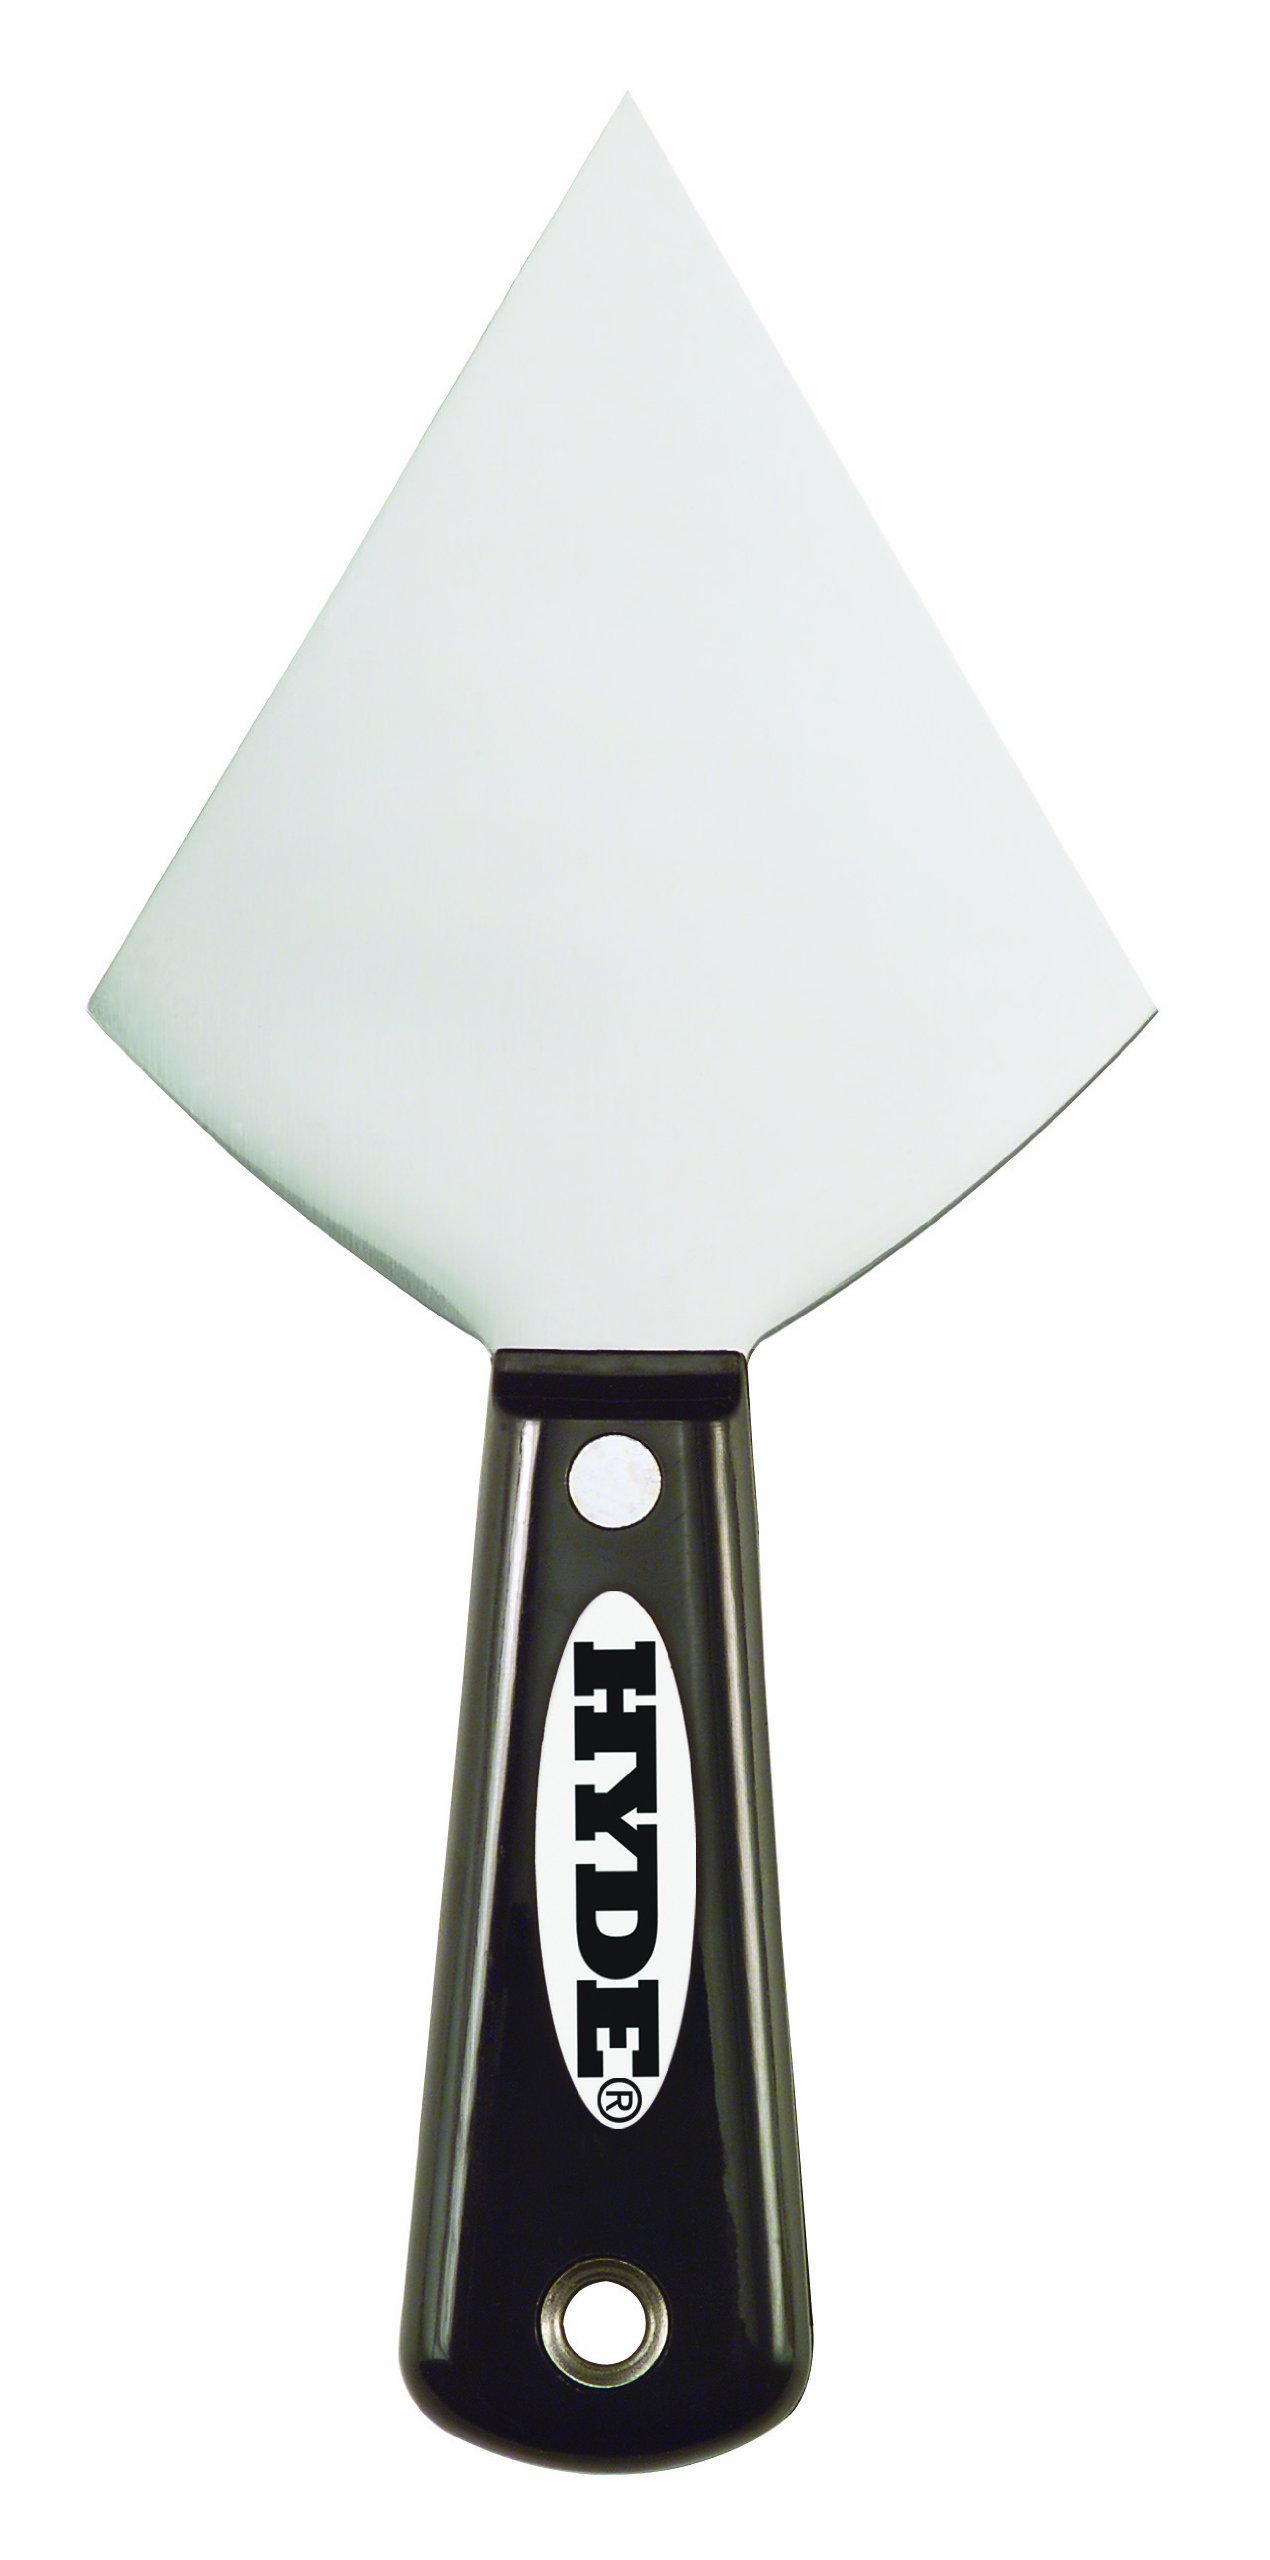 Hyde Tools 2700 3-1/2-Inch Flexible Drywall Pointing Knife, Black and Silver